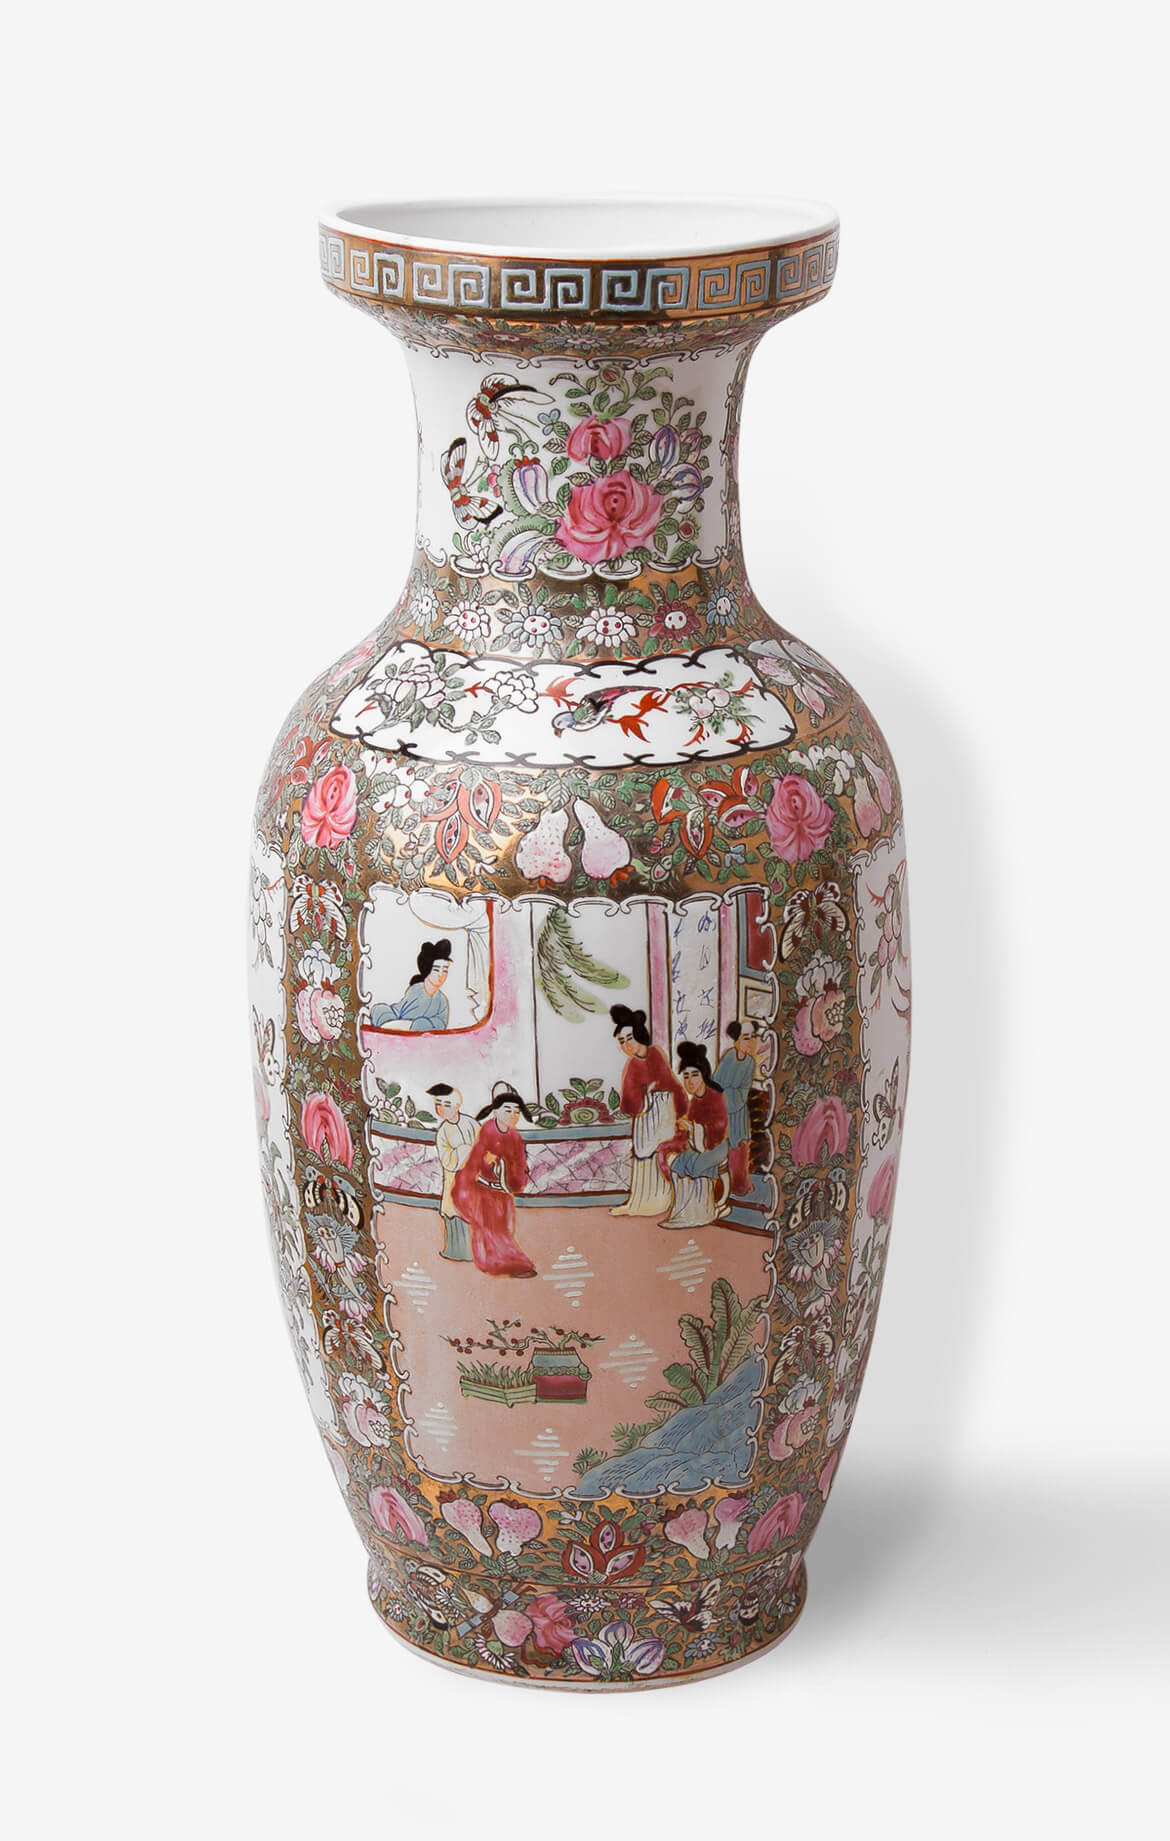 Intricate work of art on the vase